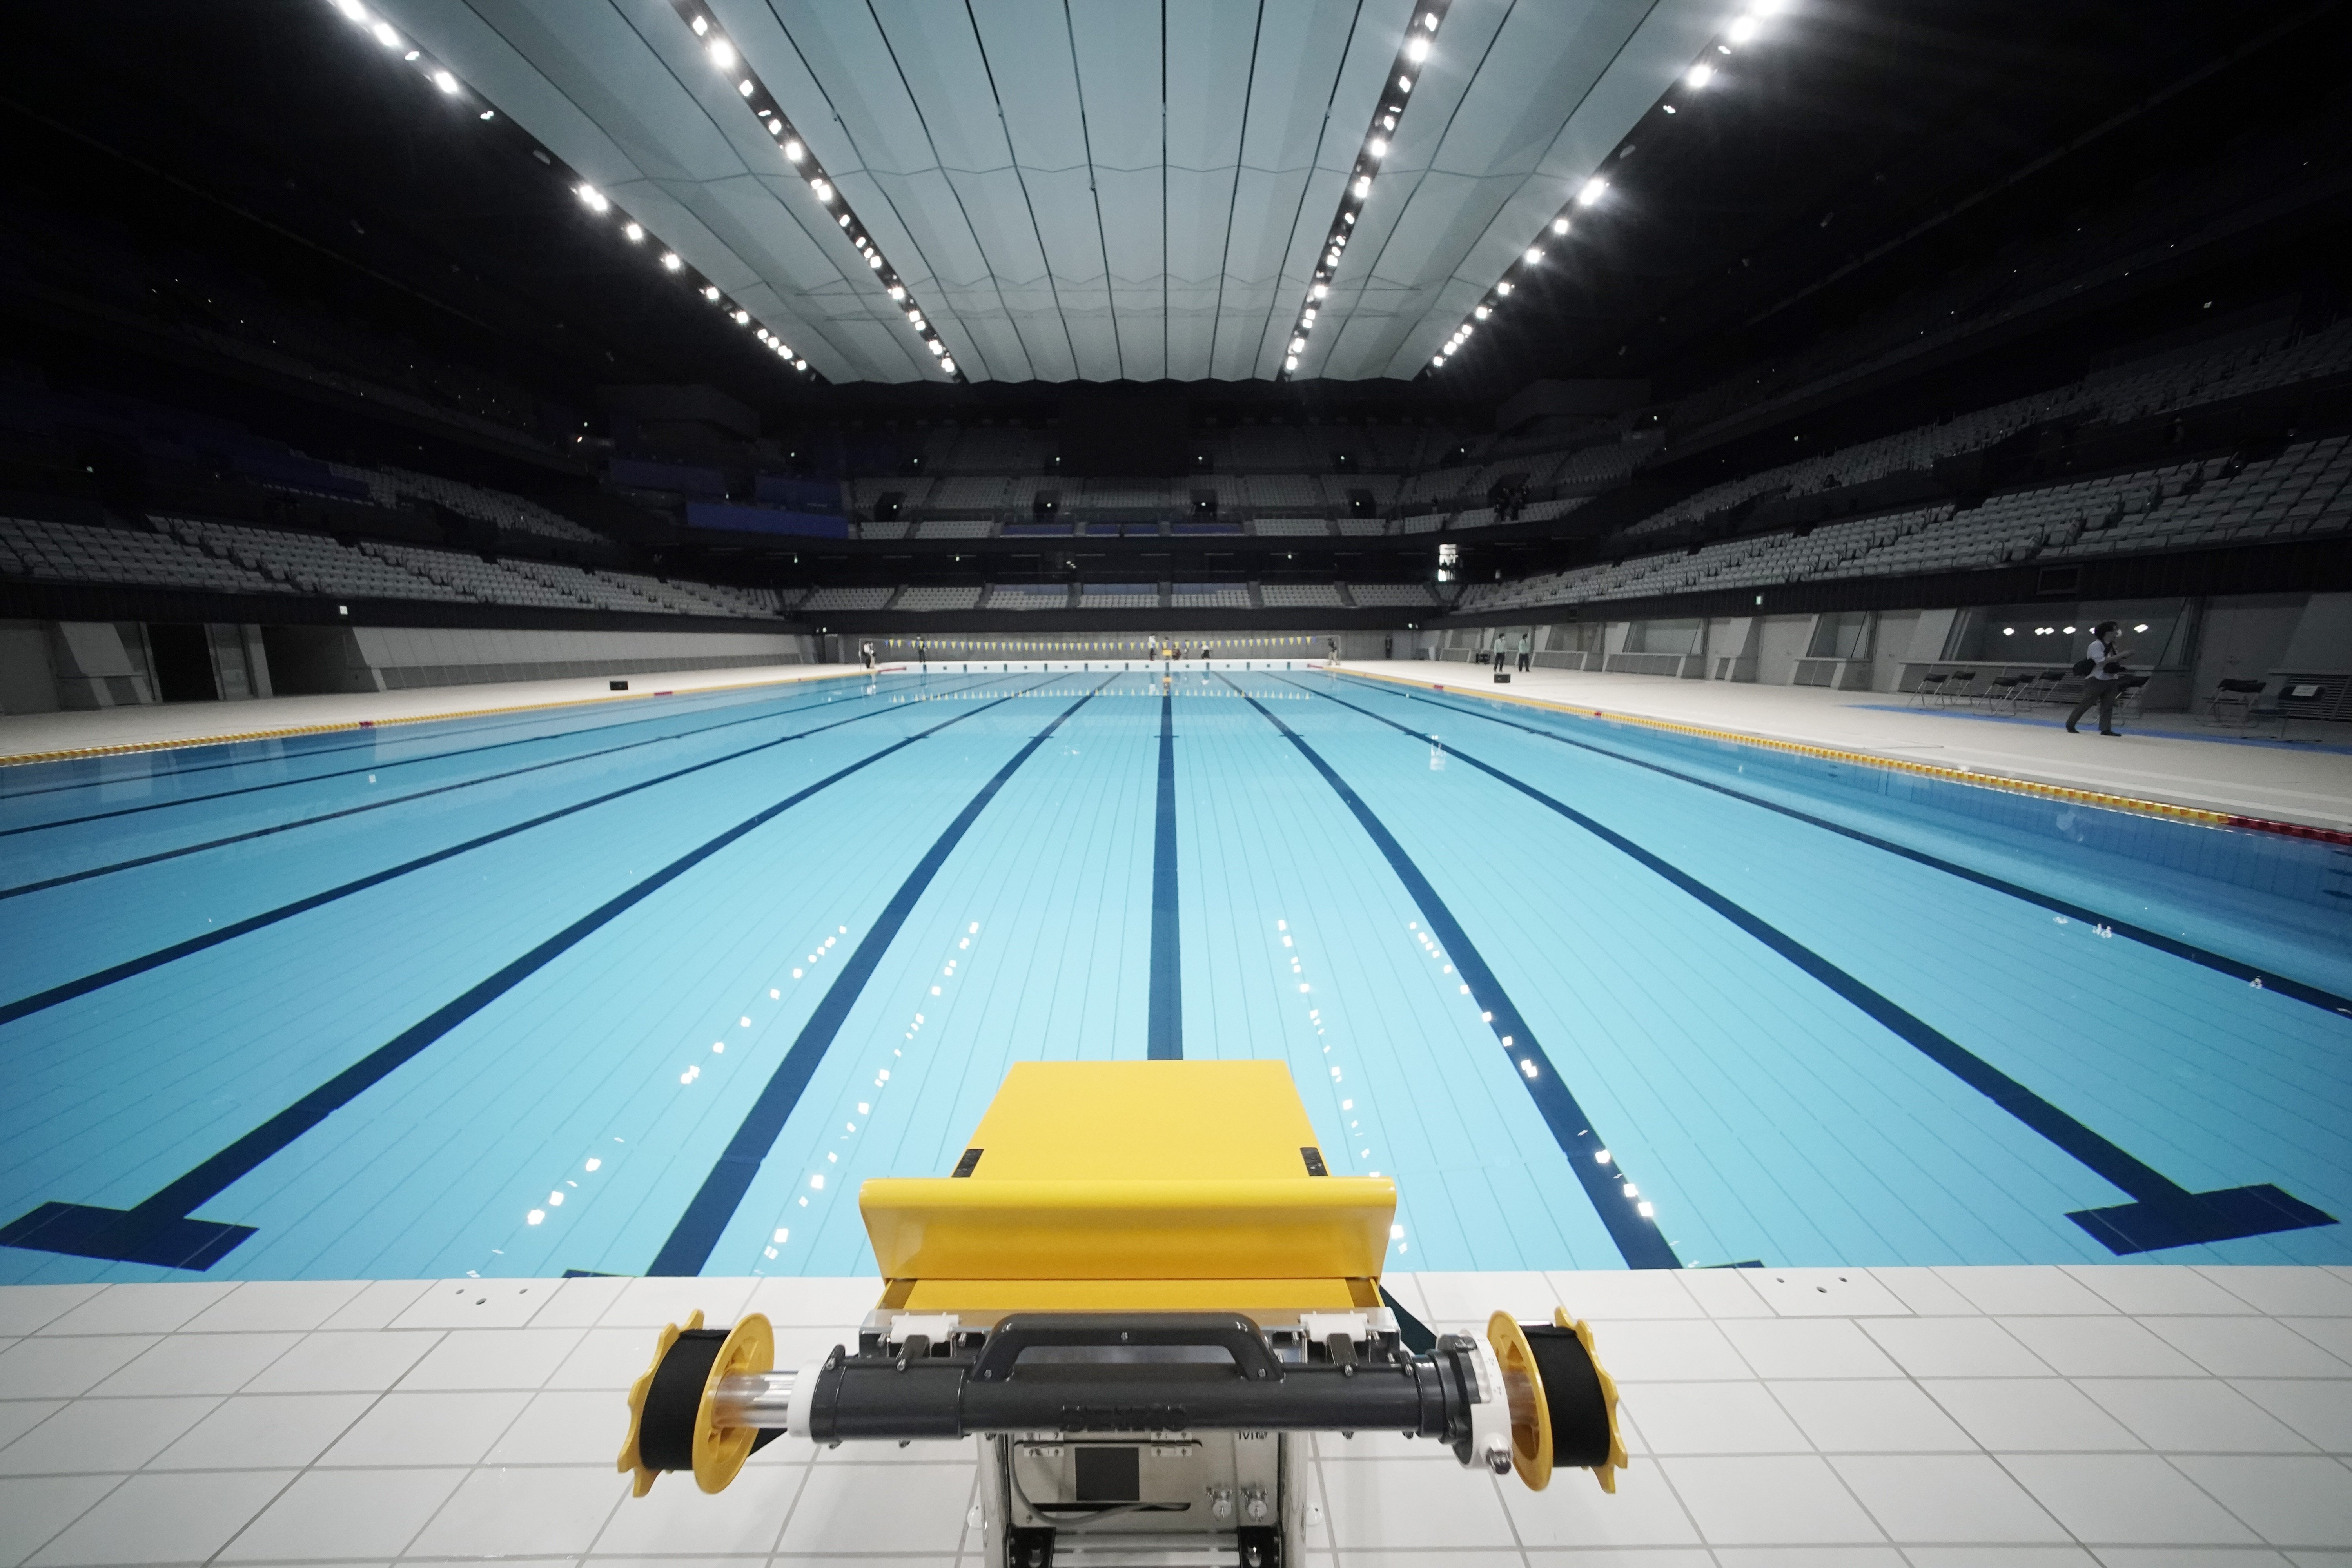 A starting block of the swimming pool at an empty Tokyo Aquatics Center following the Tokyo 2020 organizing committee's grand opening ceremony Saturday at the facility where the city plans to host Olympic artistic swimming, diving and swimming and Paralympics swimming events in 2021, Tokyo, Oct. 24, 2020. (AP Photo/Eugene Hoshiko)